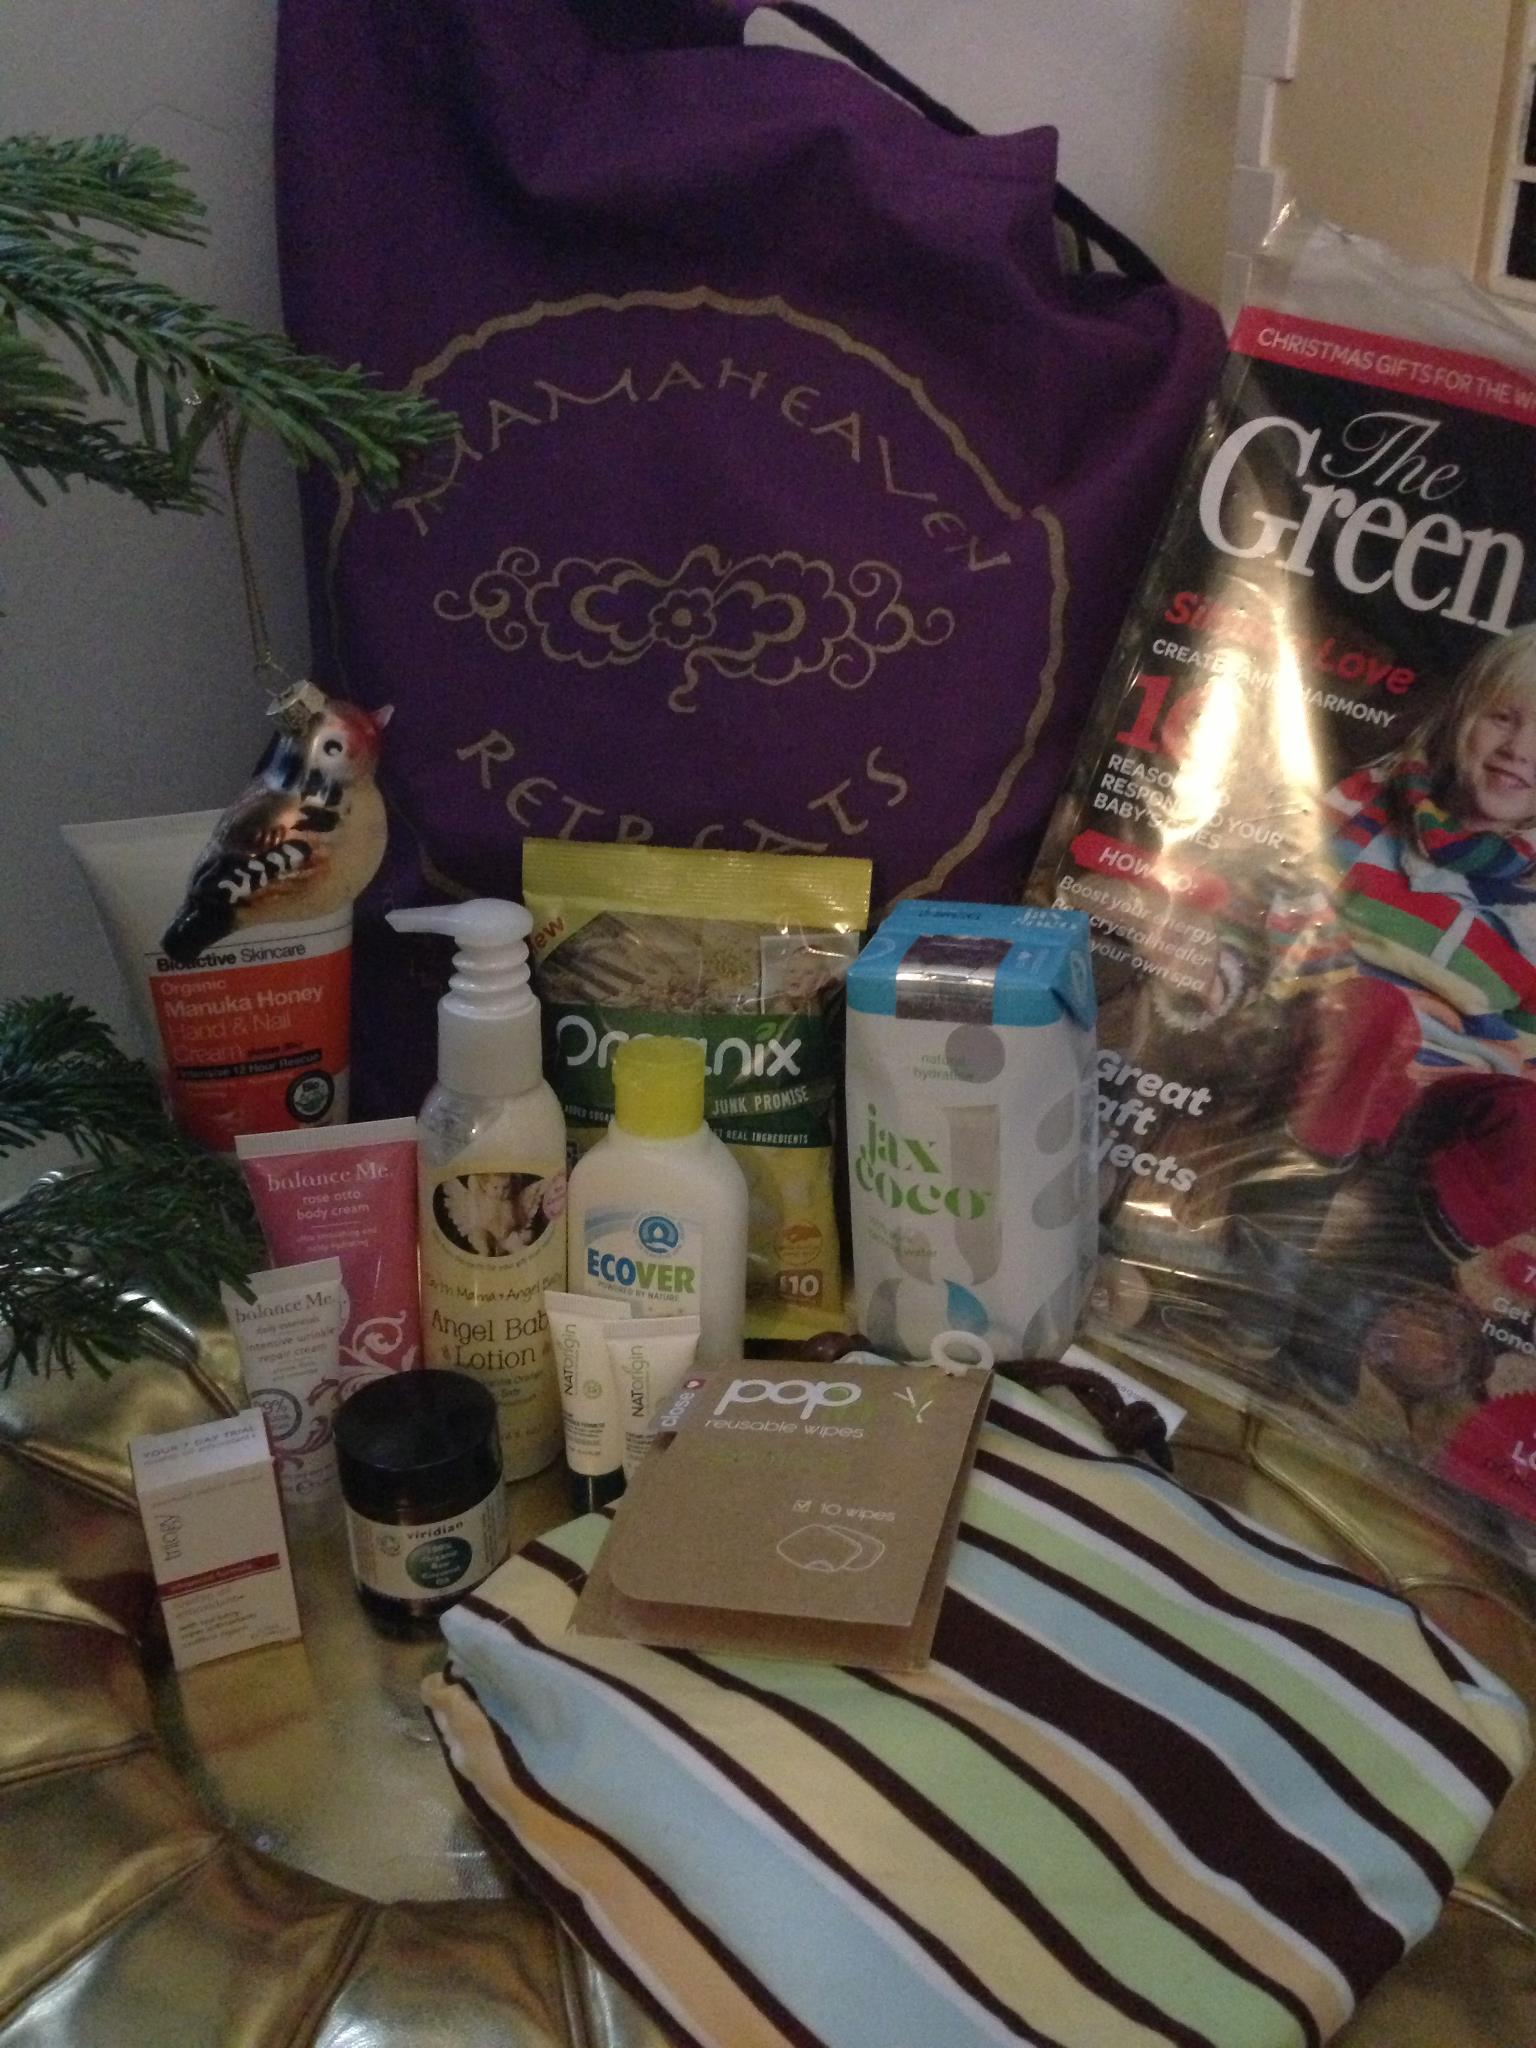 Mamaheaven goodie bag Dec 2012.jpg